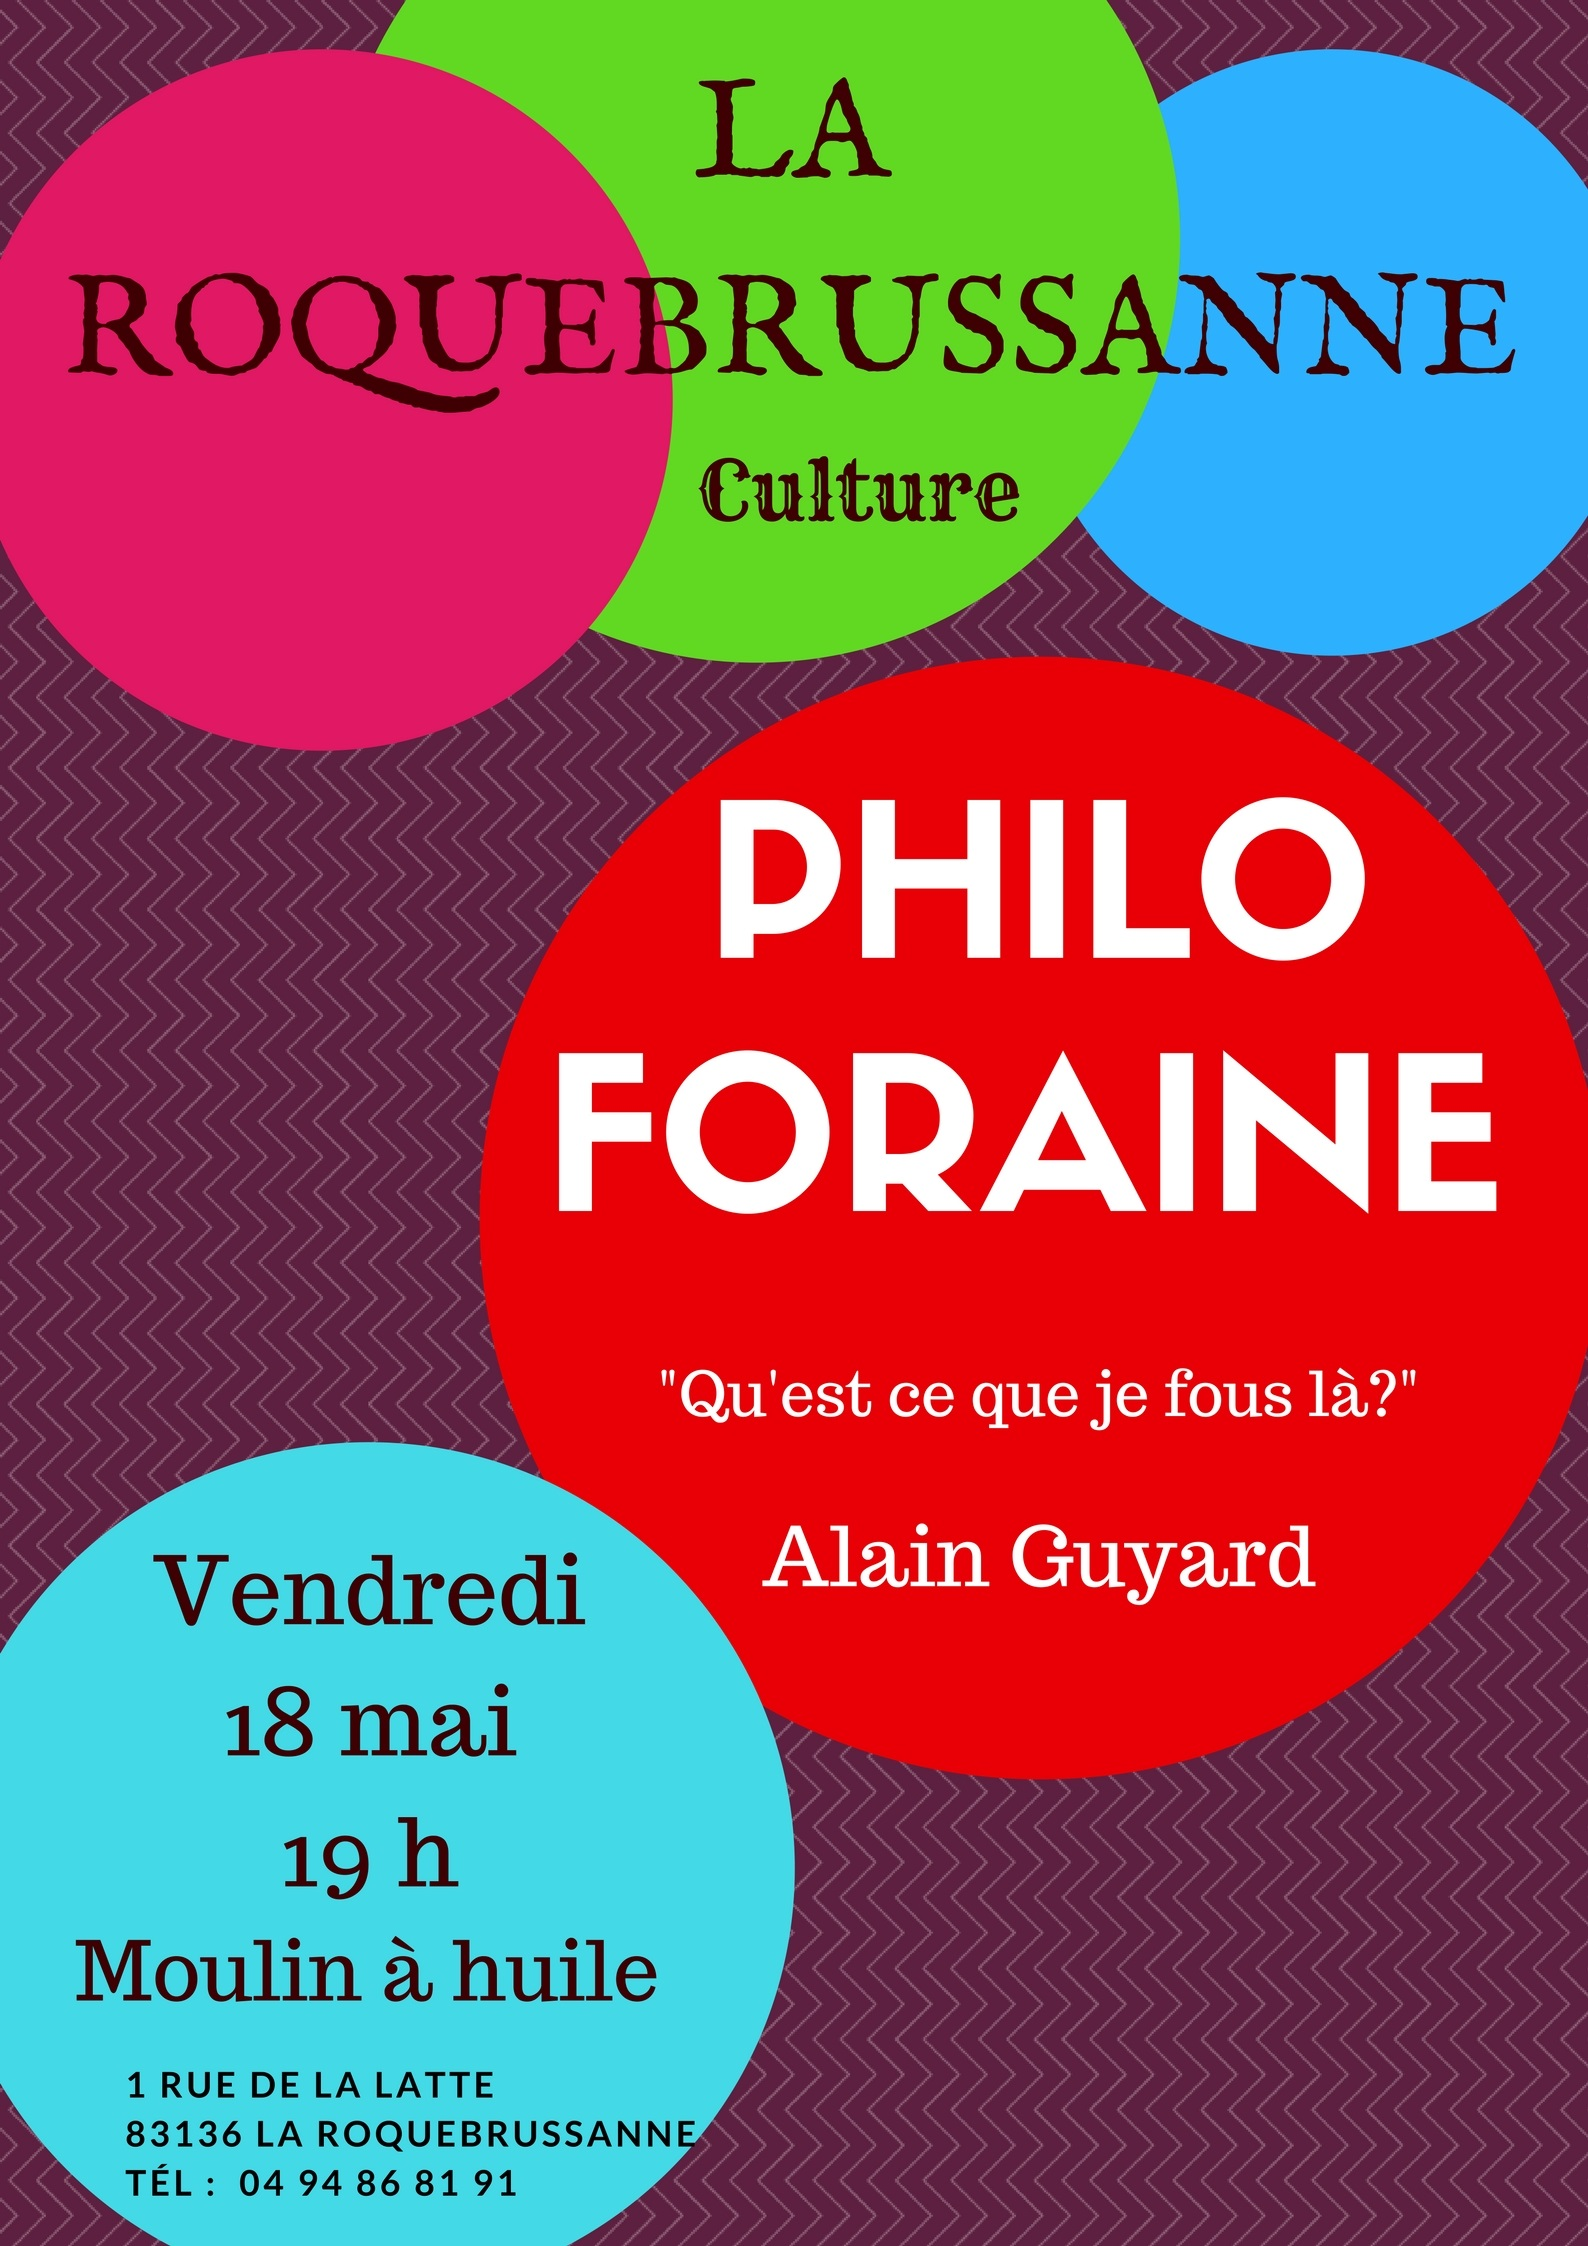 Philo foraine mai 18